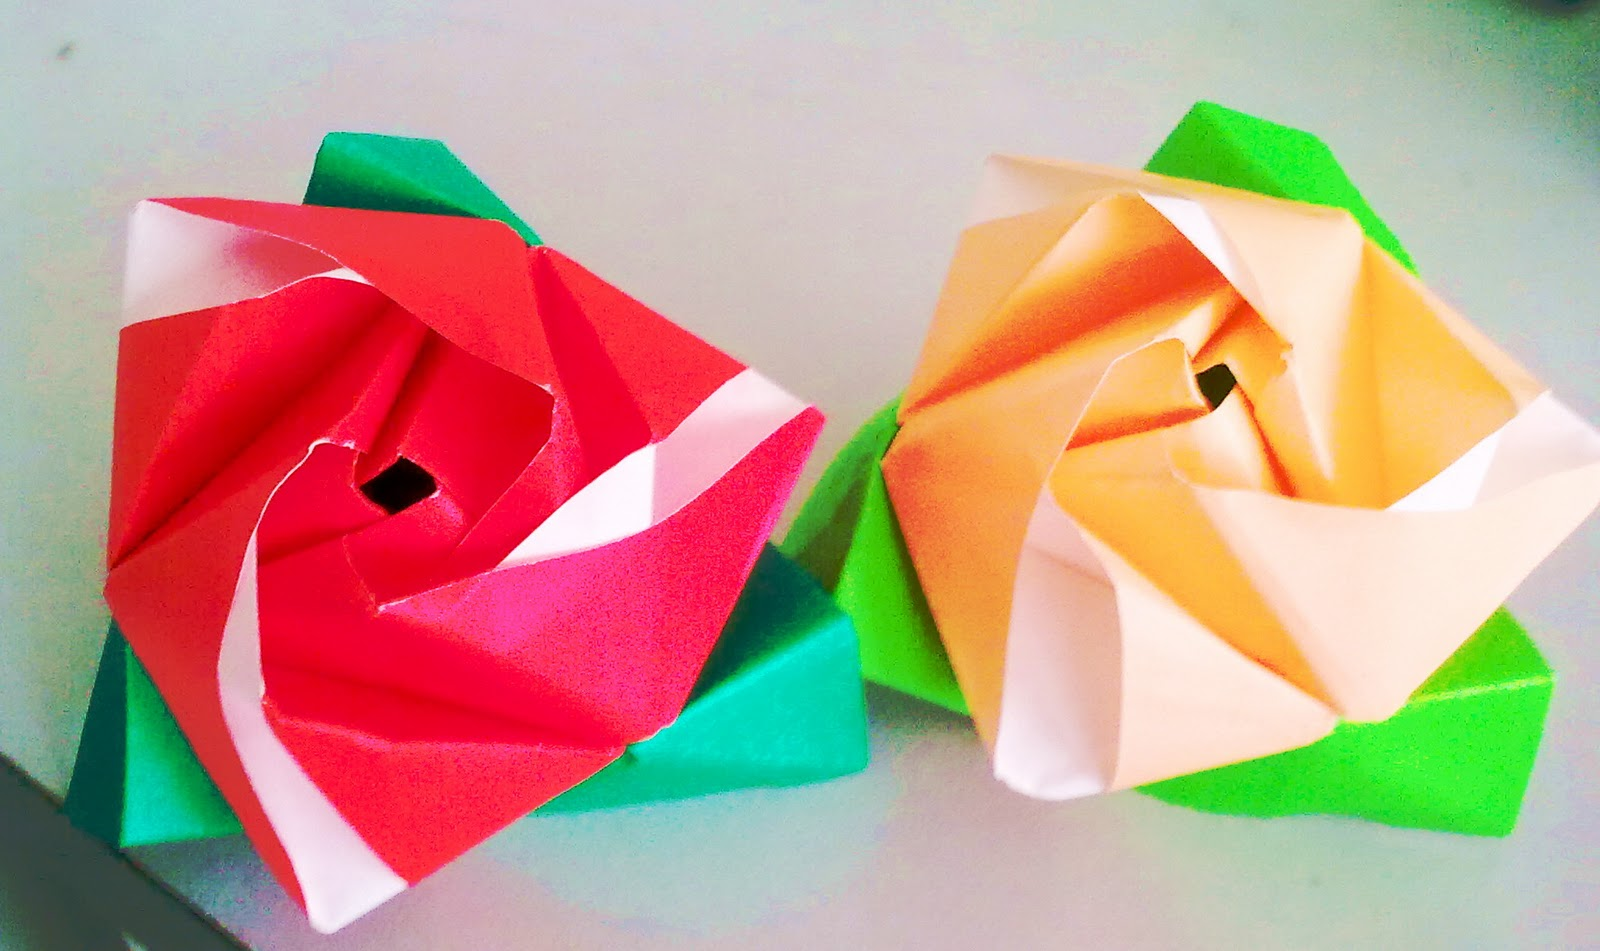 A Sojourner Paper Folding Craft